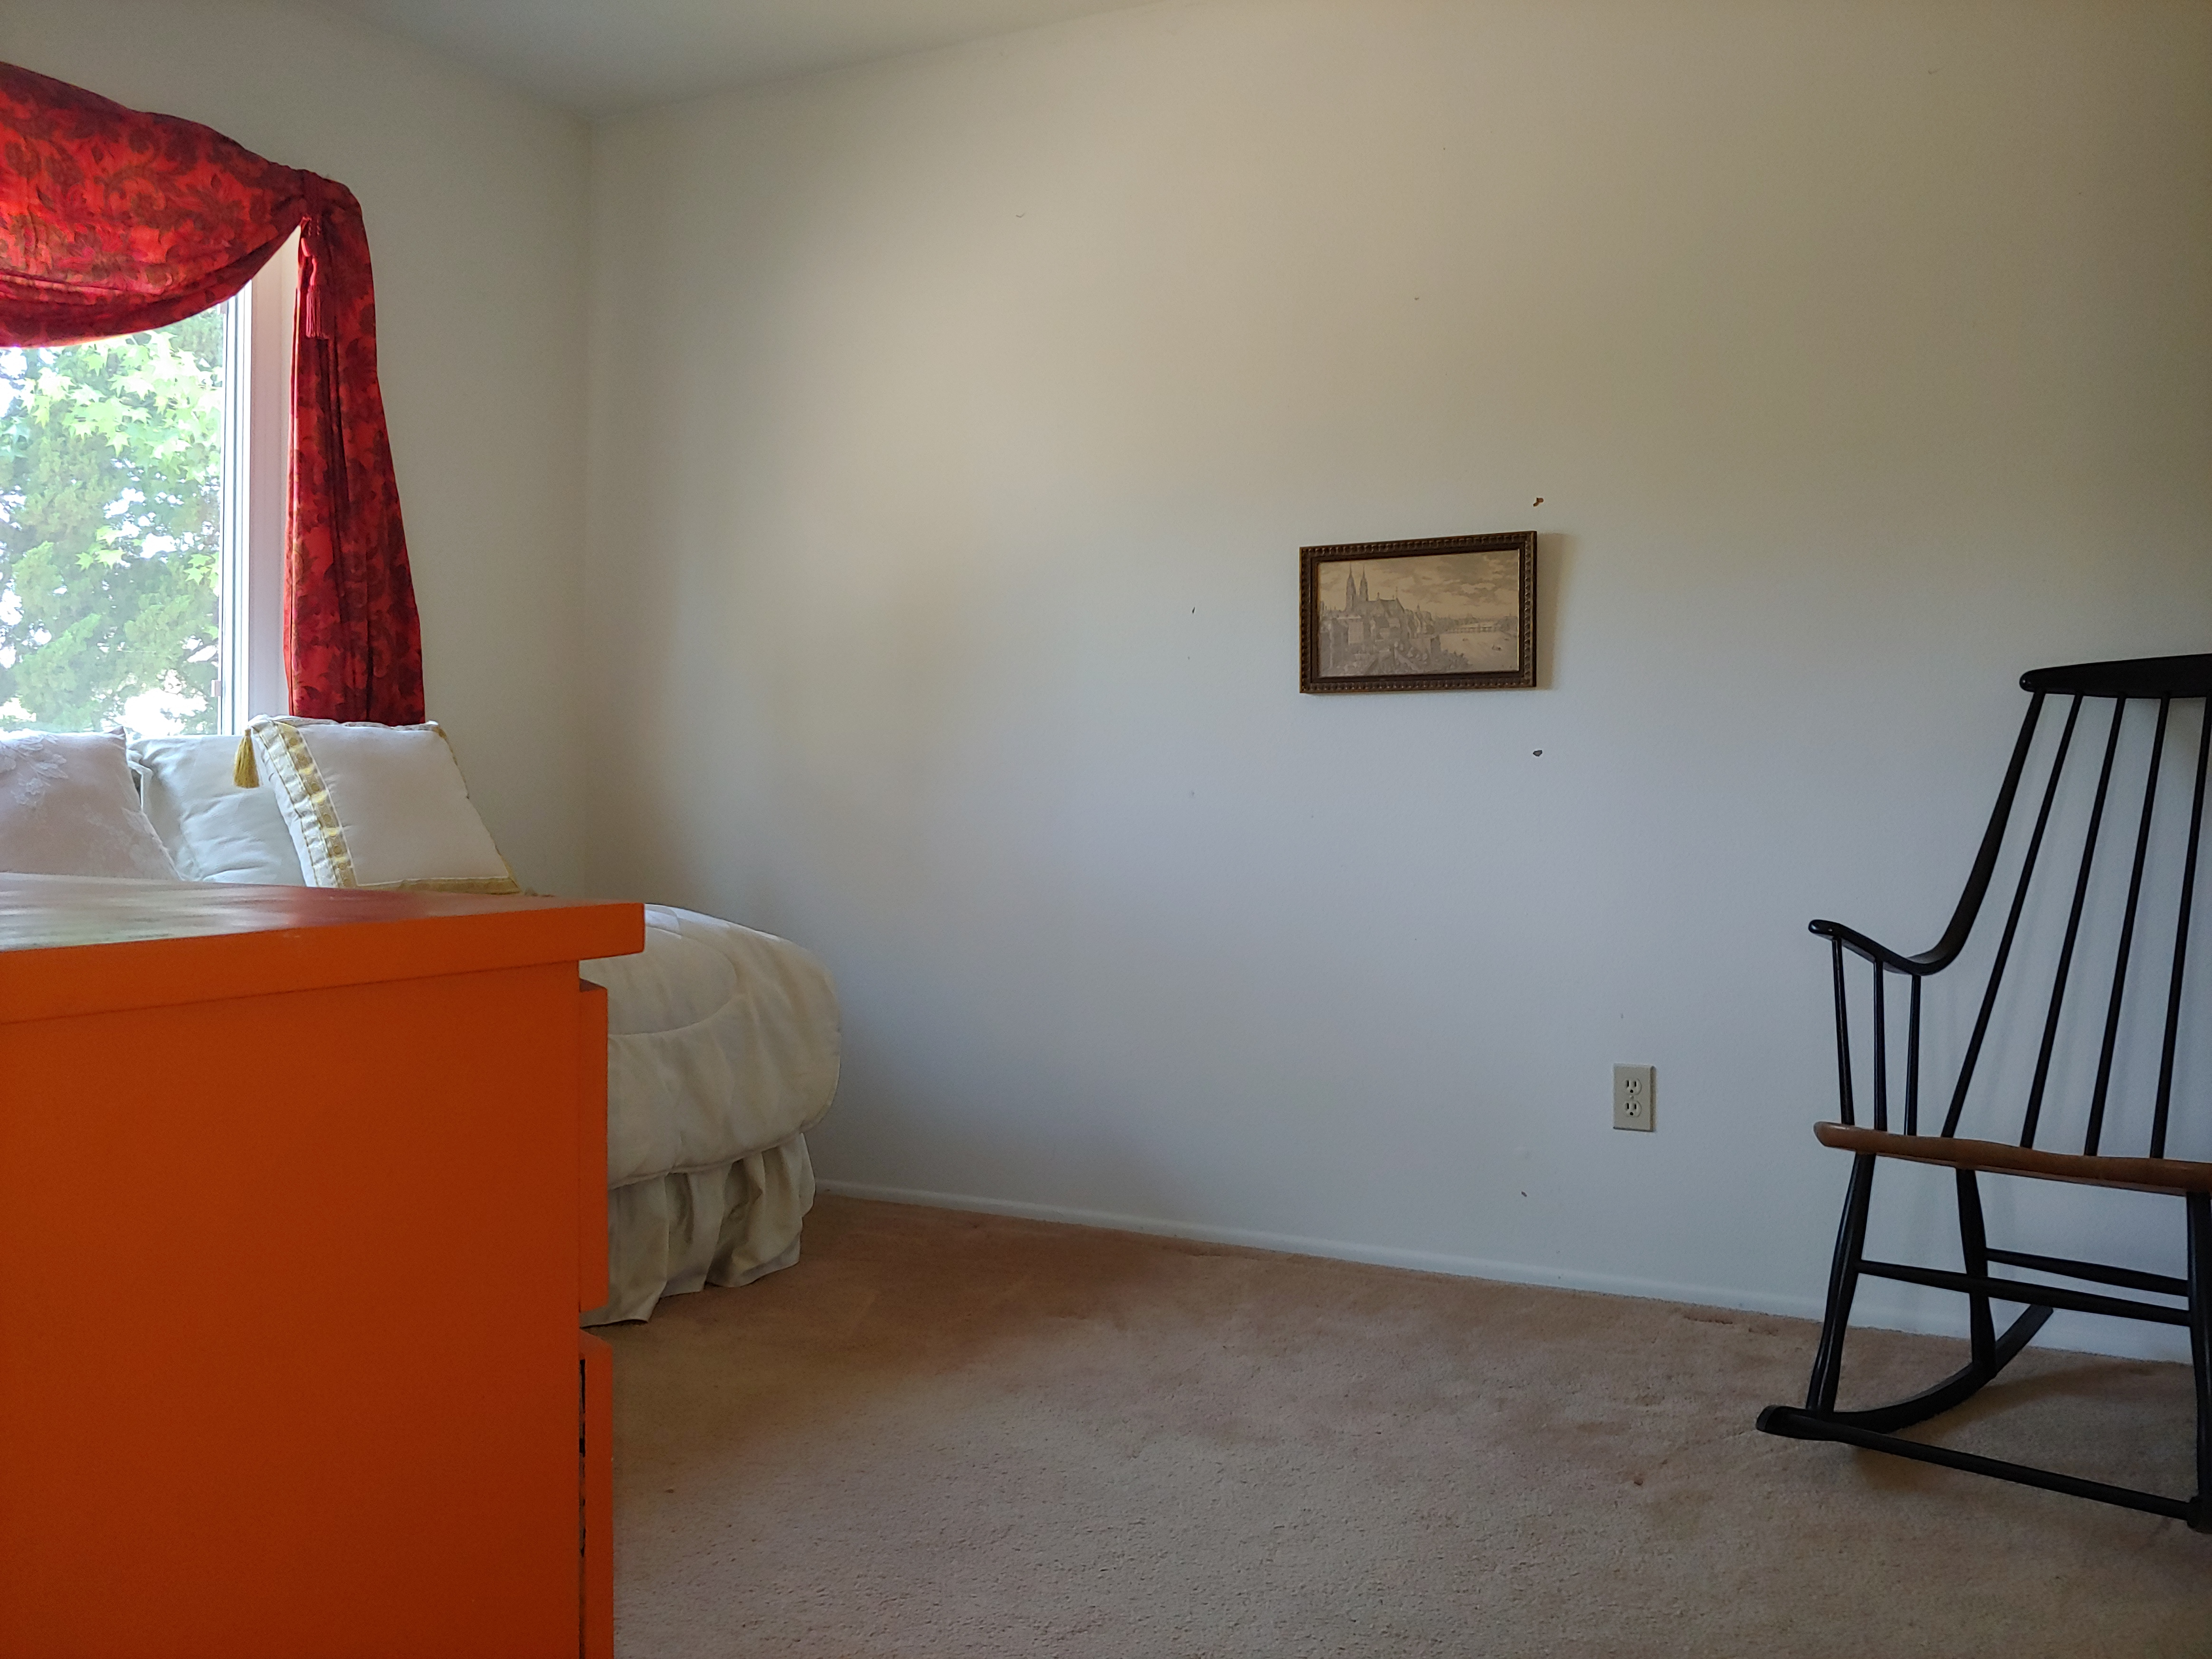 Medium Bedroom, Maid service, Bathroom, In two-story hom5